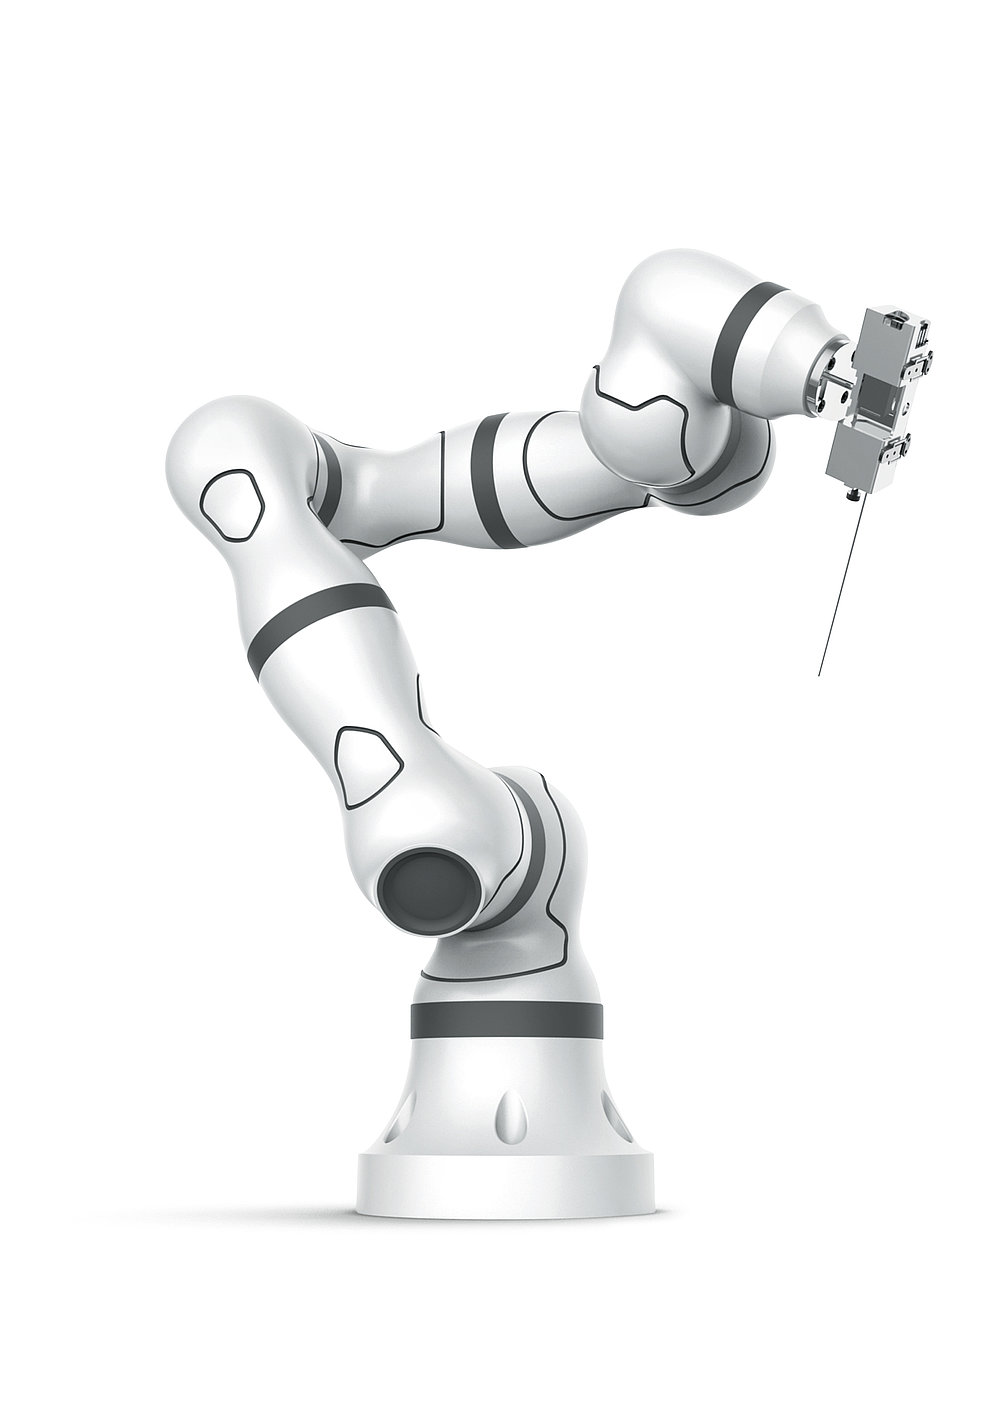 Seven-Axis Intelligent Cooperative Arm | Red Dot Design Award